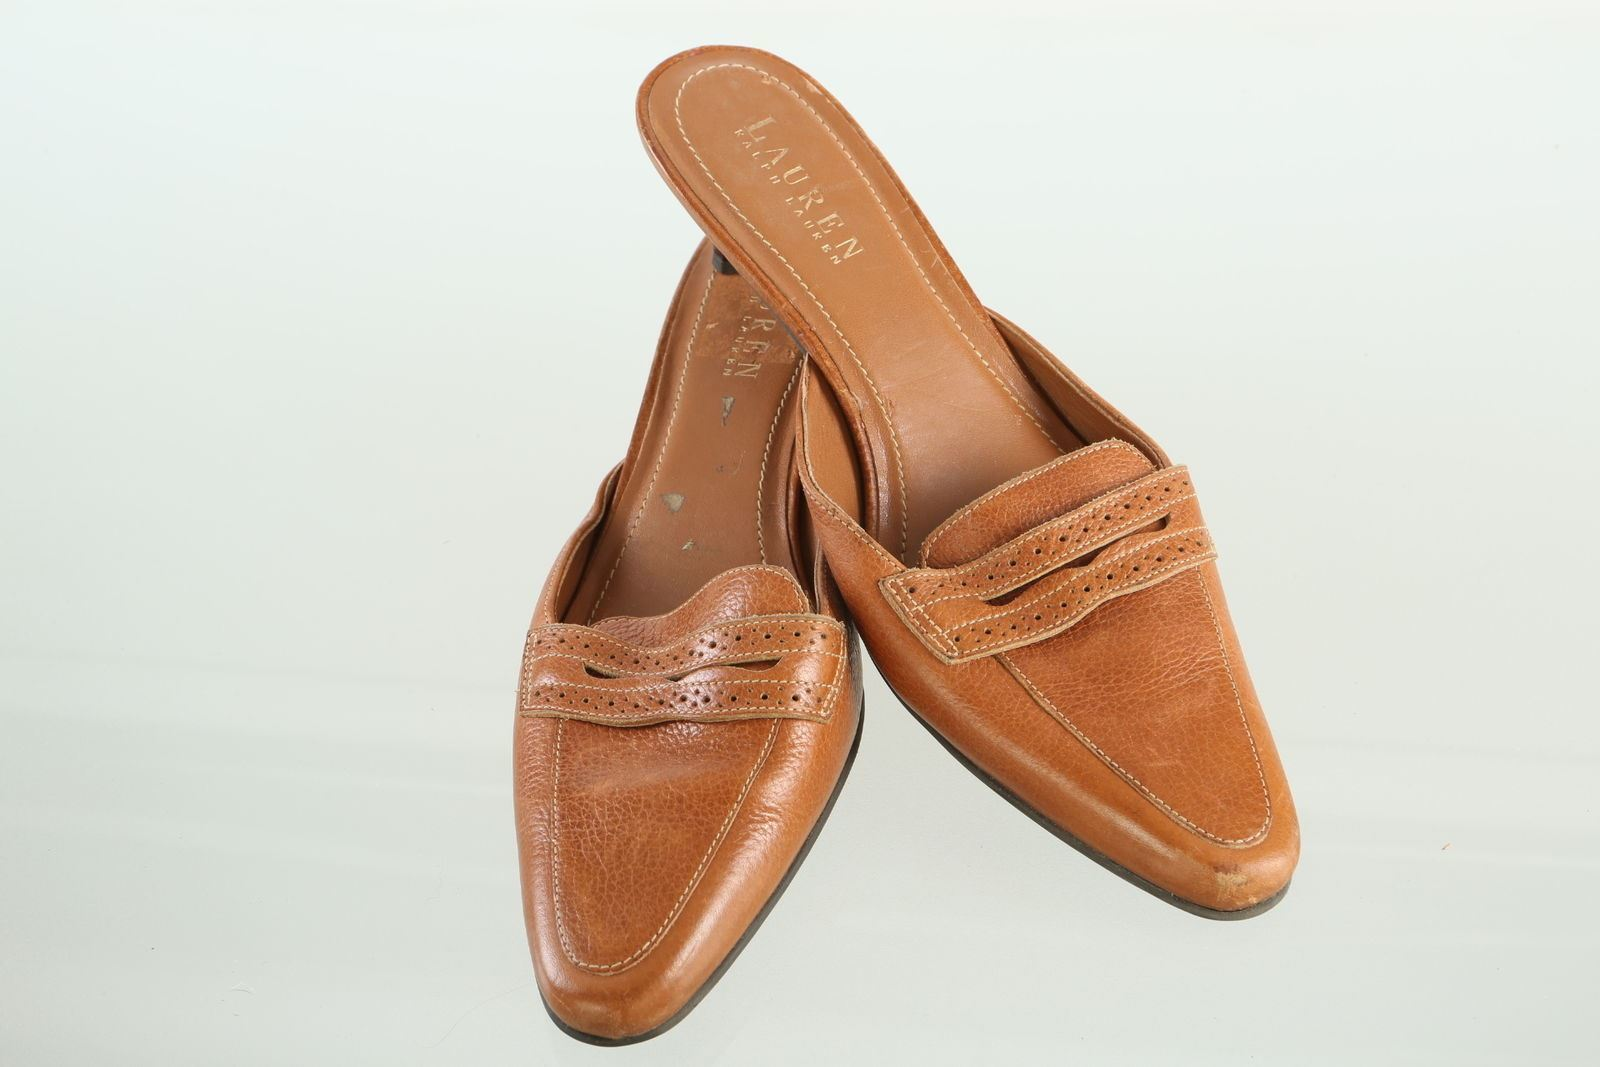 Ralph Lauren Penny Loafer Heel Sz 7.5 B and 21 similar items